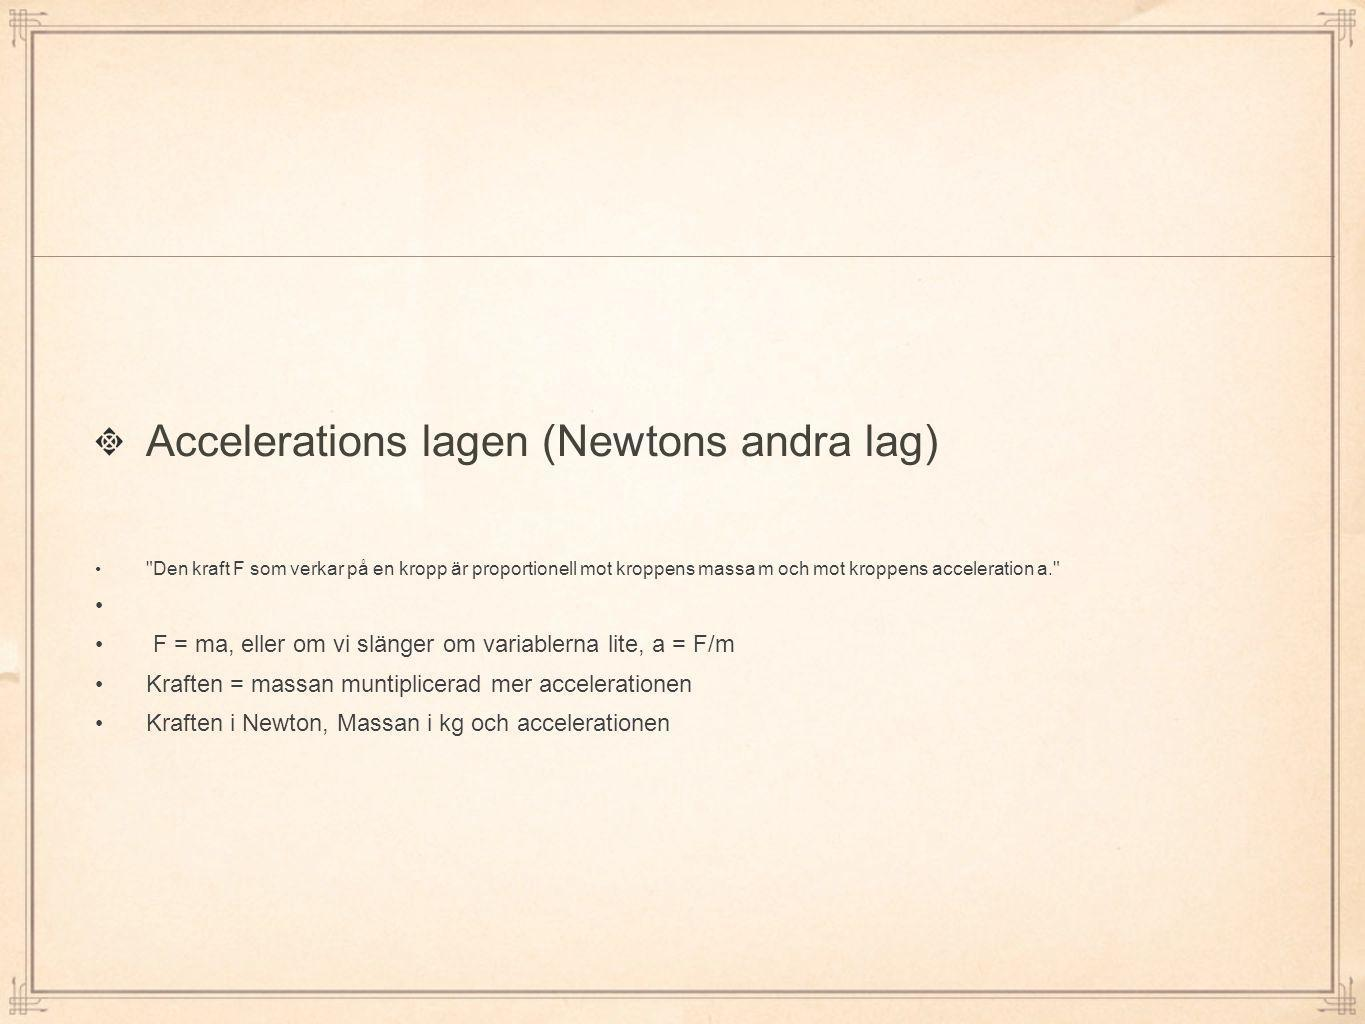 Accelerations lagen (Newtons andra lag)